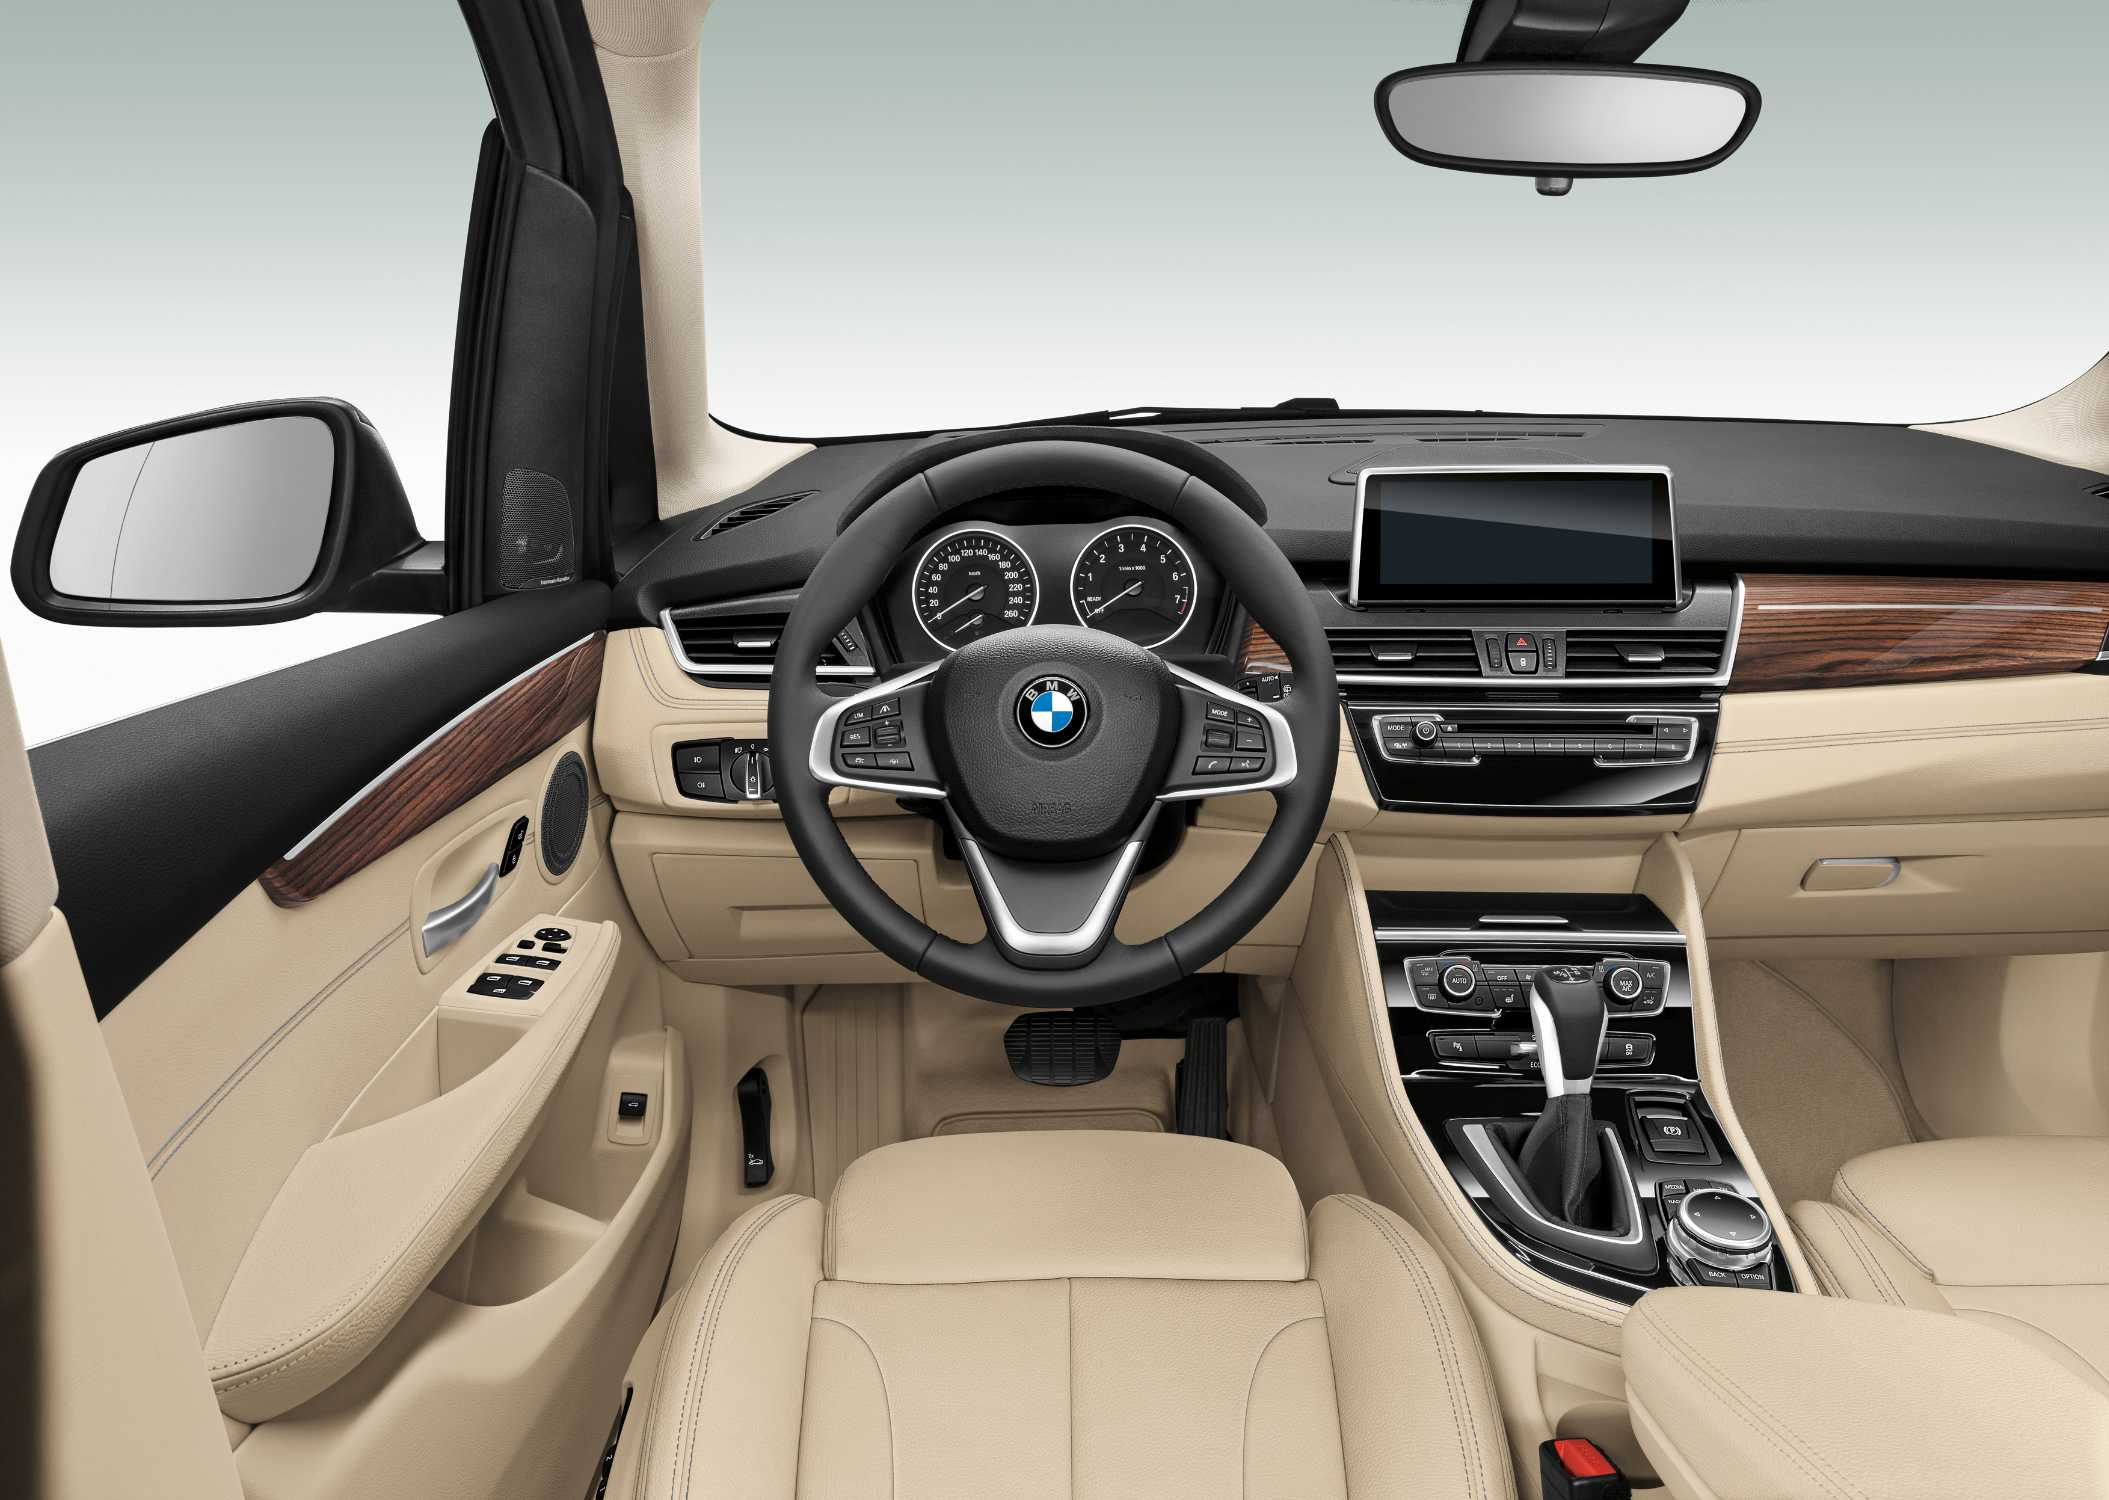 BMW 2 Series Active Tourer Interior 02 2014